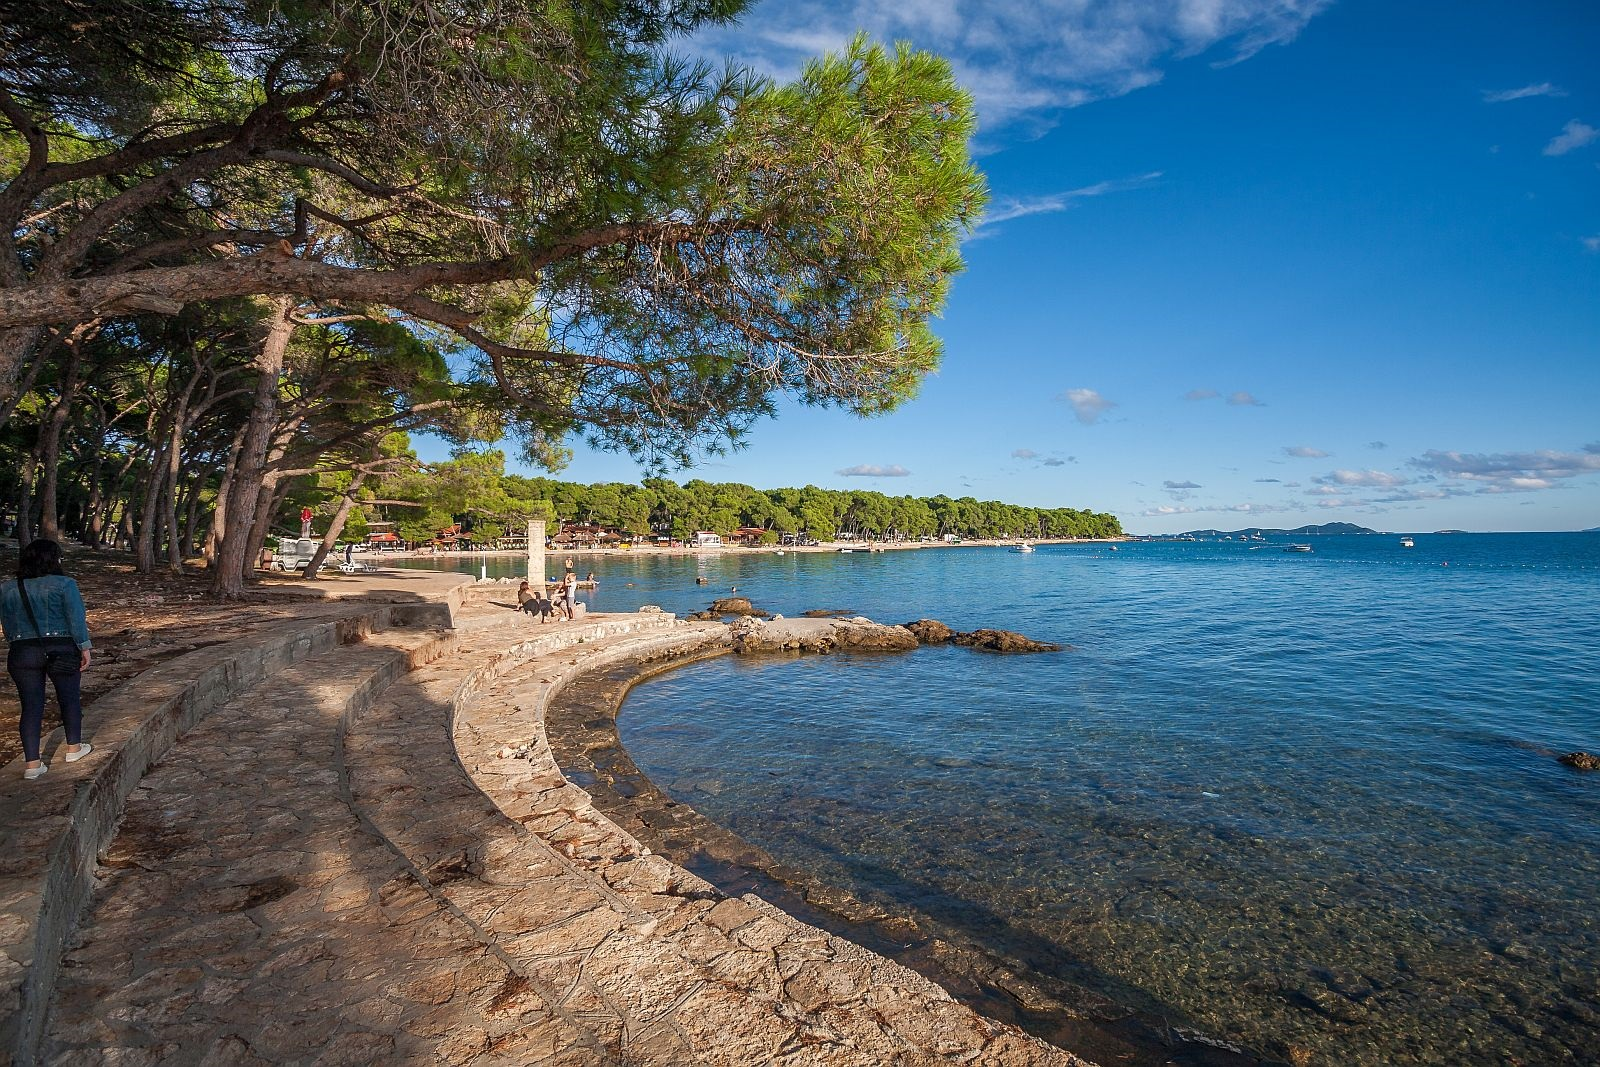 biograd na moru, croatia, dalmatia, adriatic, holiday, vacation,